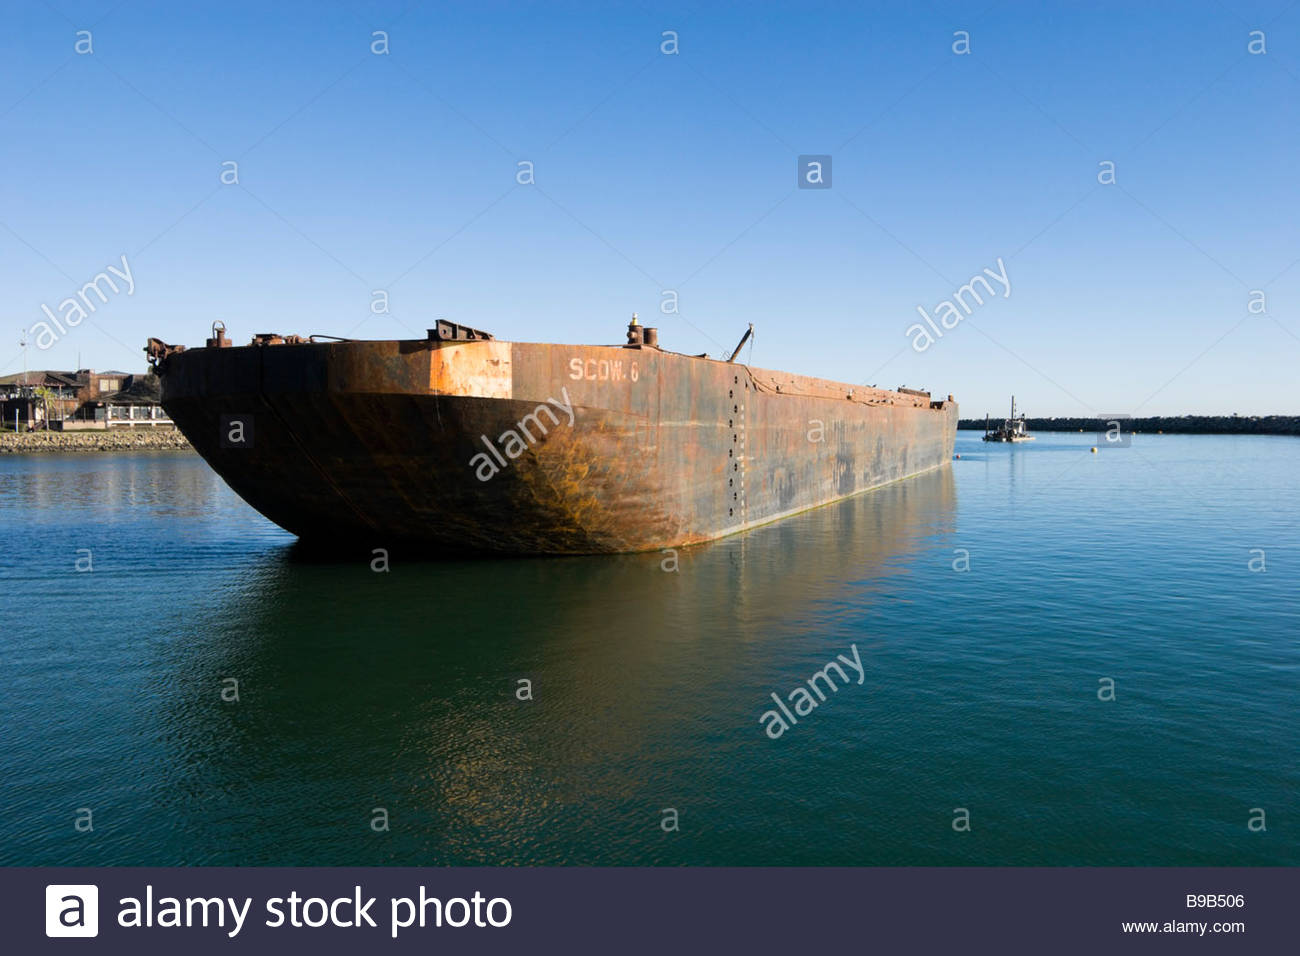 Old Barge Stock Photos and Images